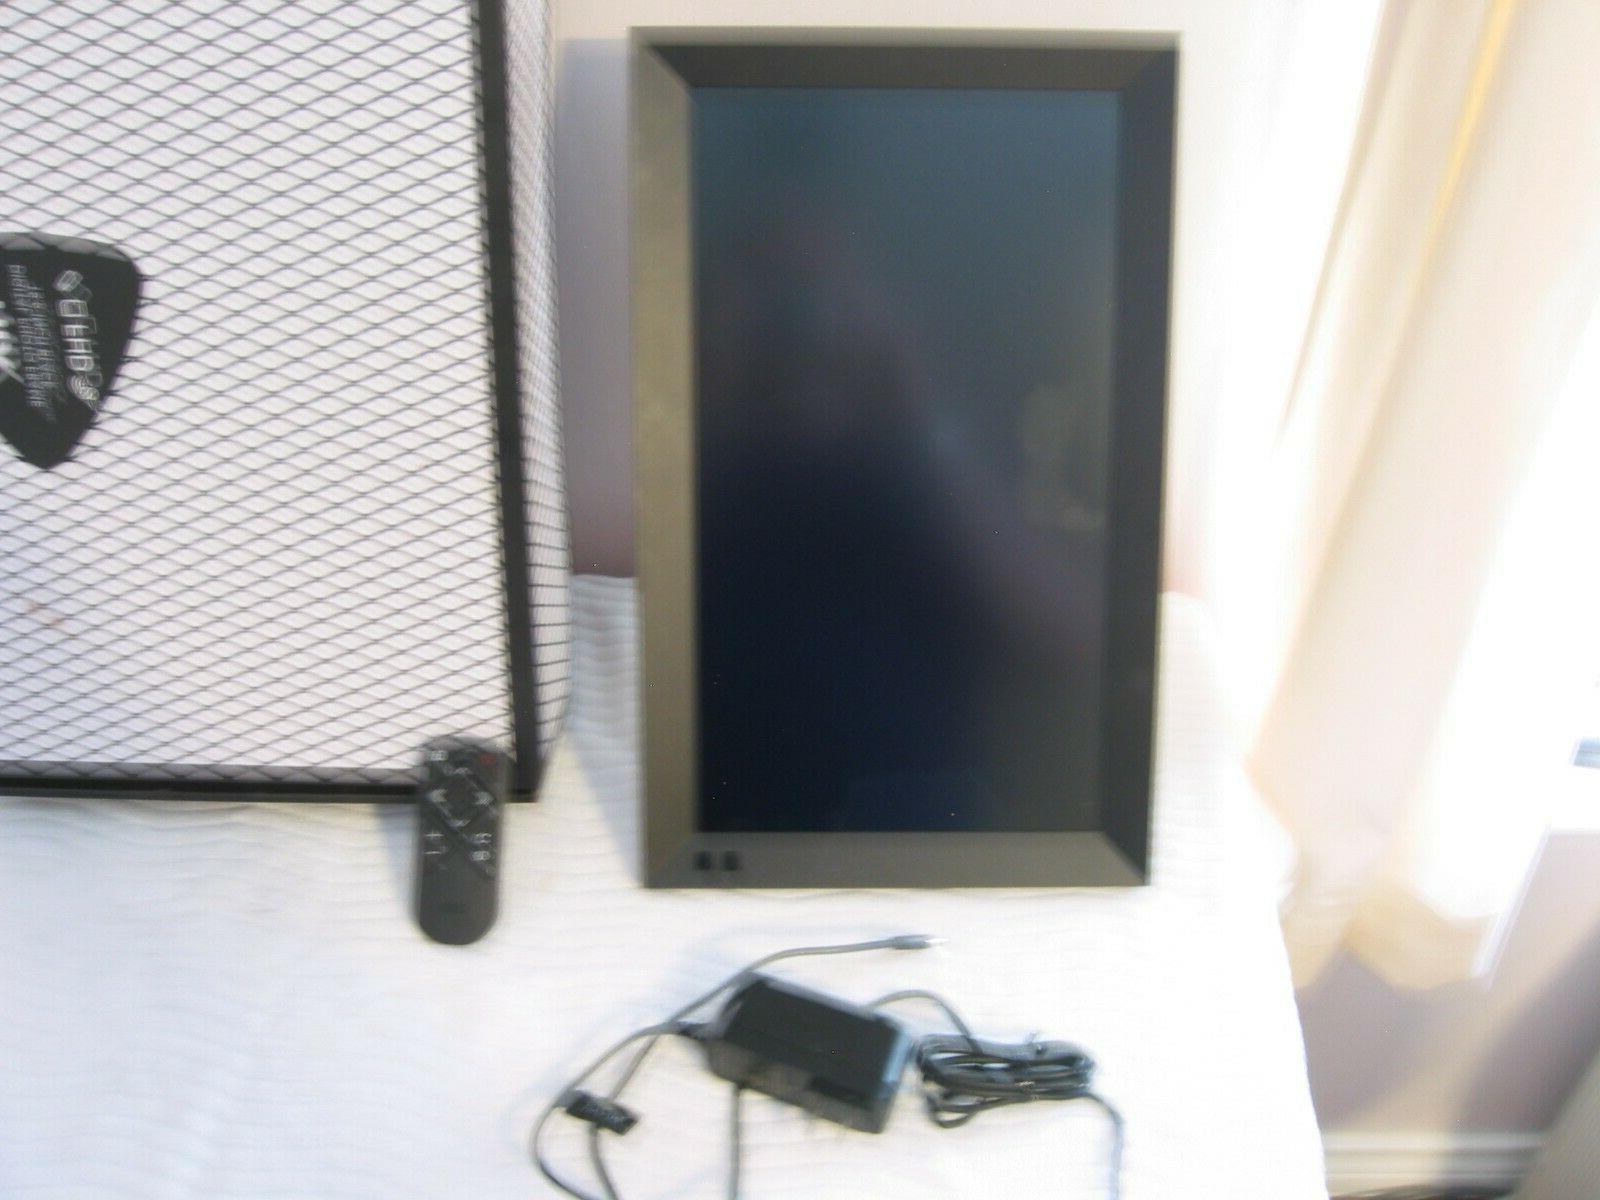 NIX 15.6 Picture Frame - or Stand, Full HD